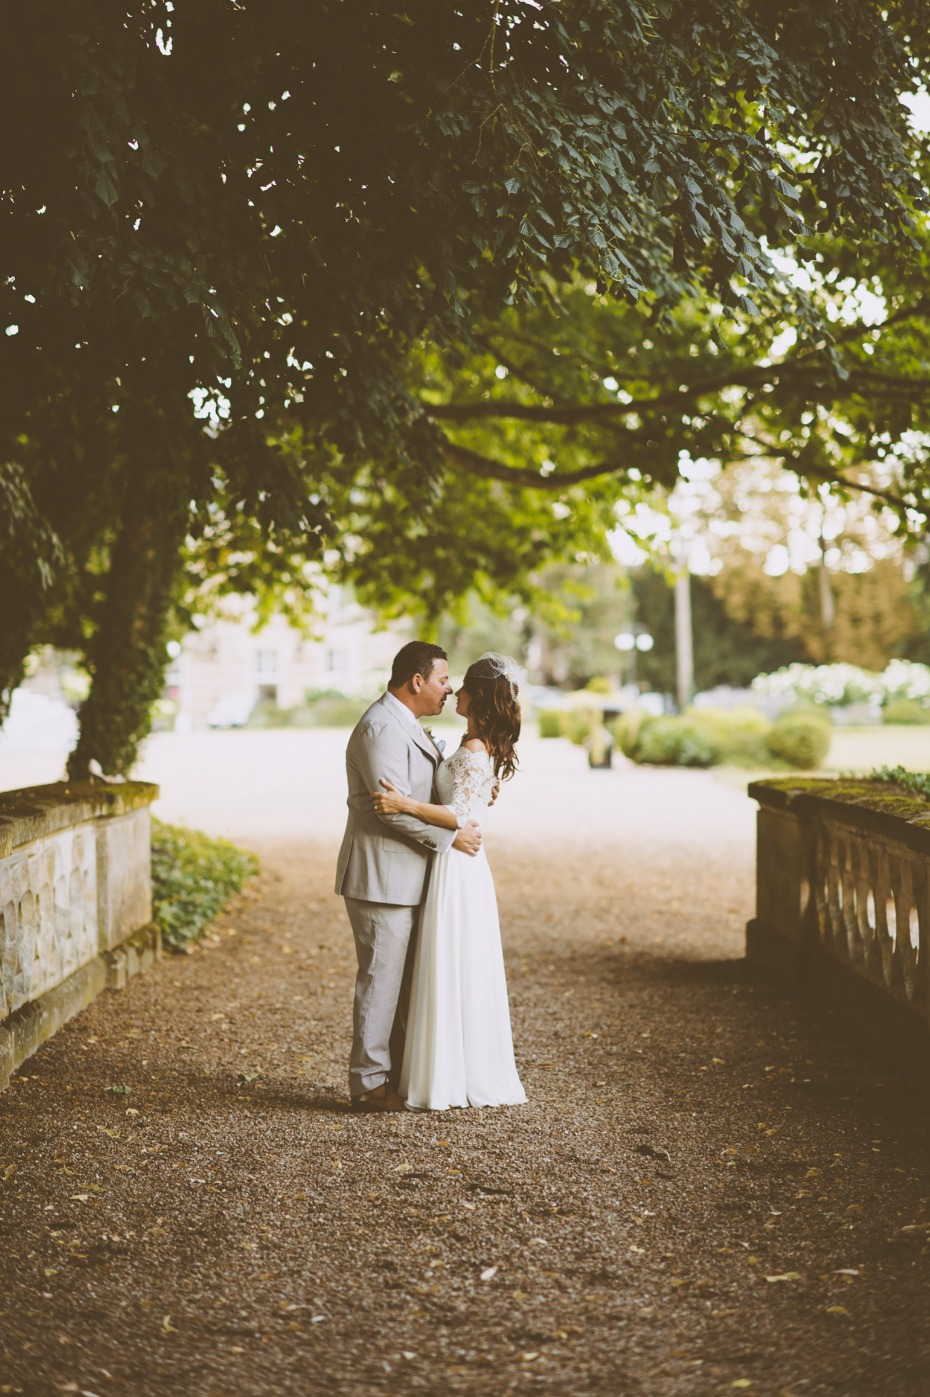 Wedding at Chateau Challain in France